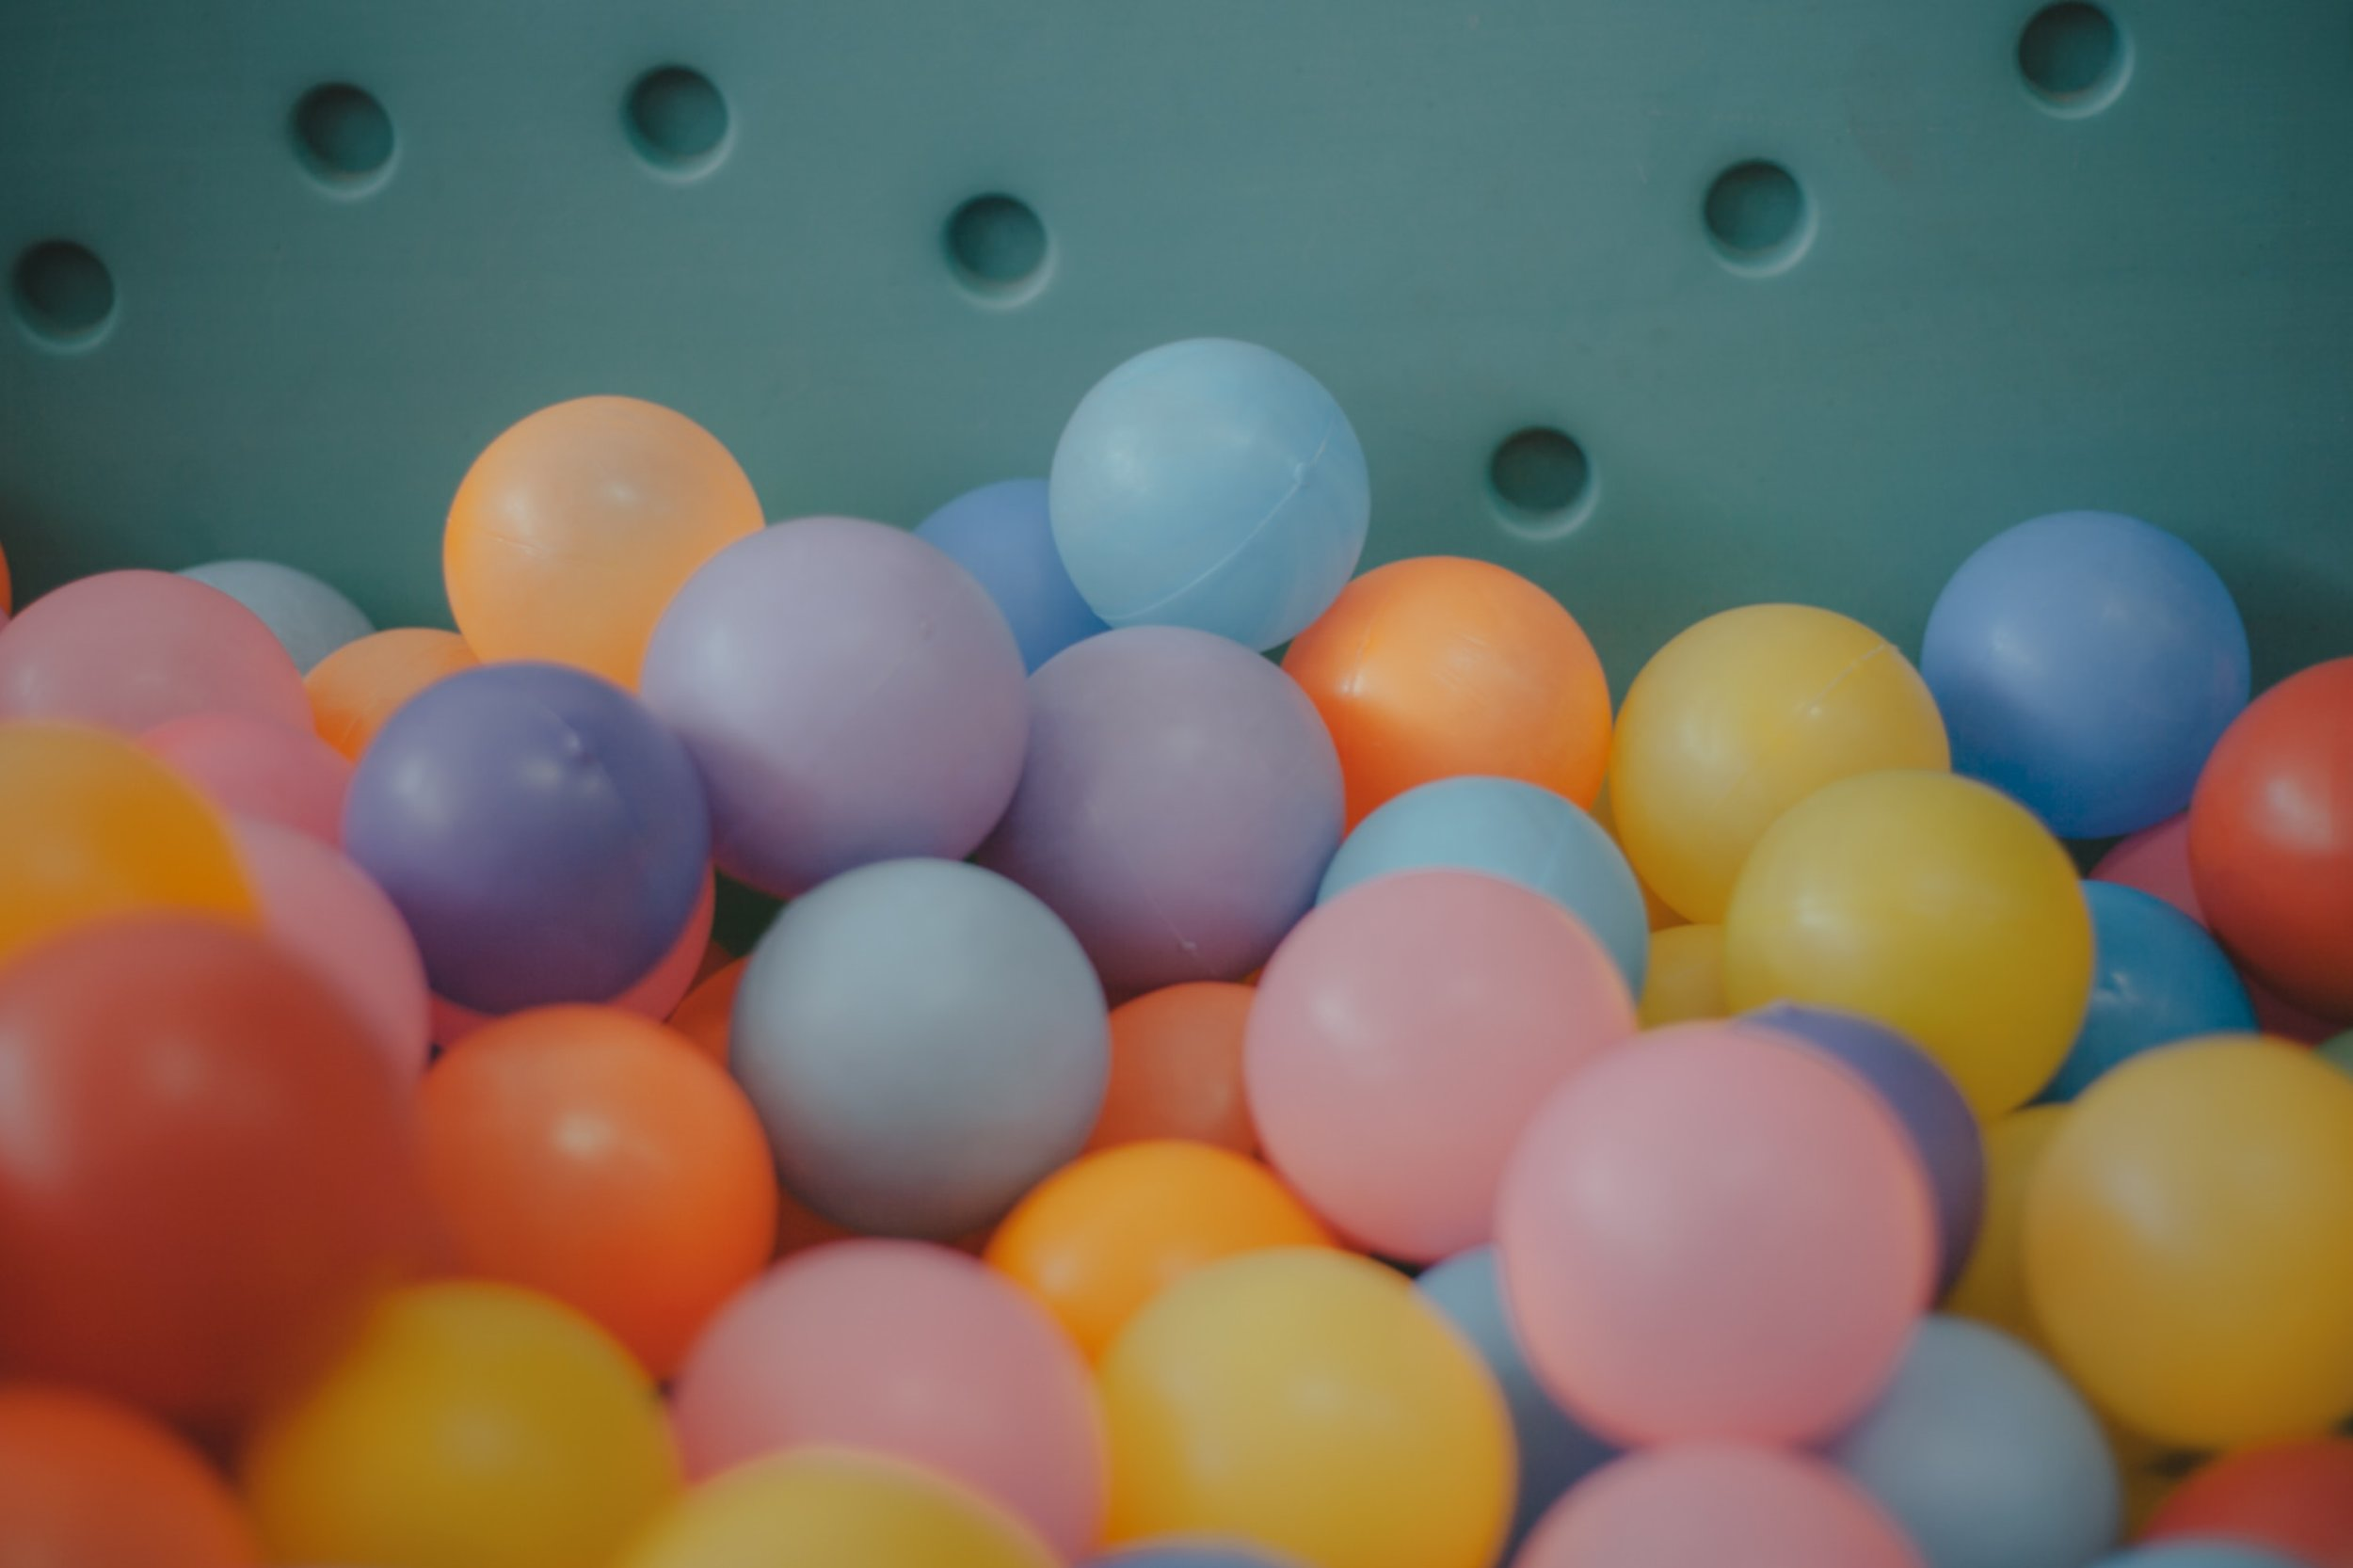 Ball pit and balls.jpg